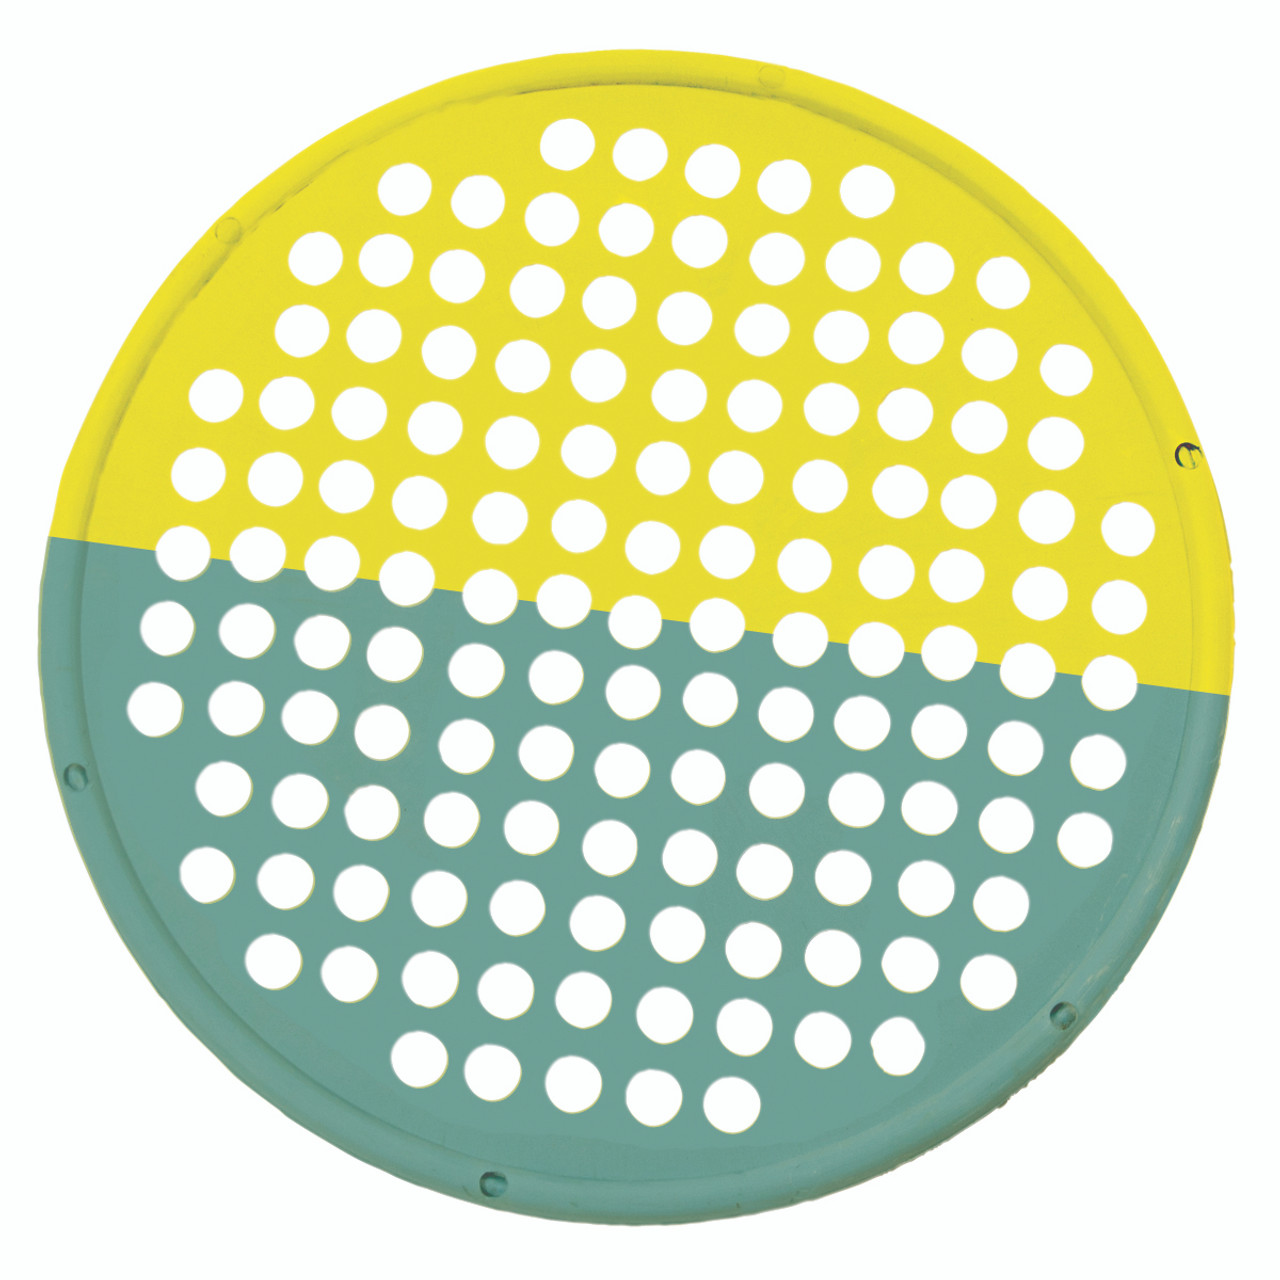 """CanDo¨ Hand Exercise Web - Low Powder - 14"""" Diameter - multi-resistance, Yellow/Green"""